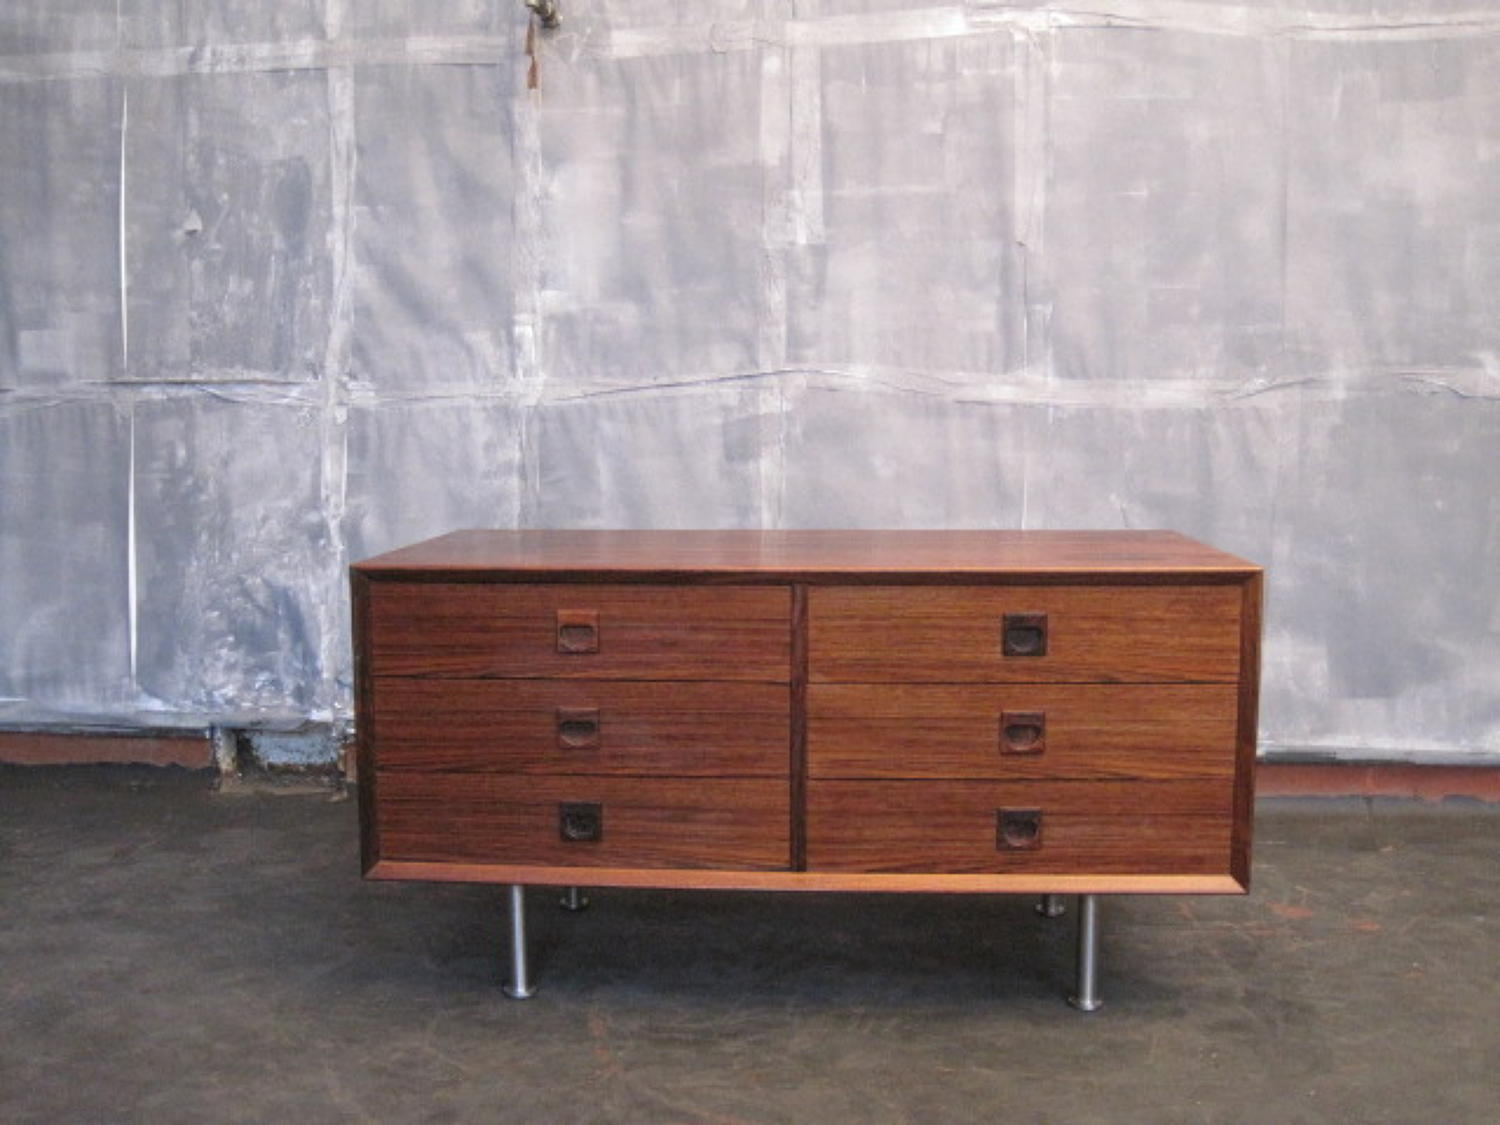 Rosewood chest of drawers by Brouer